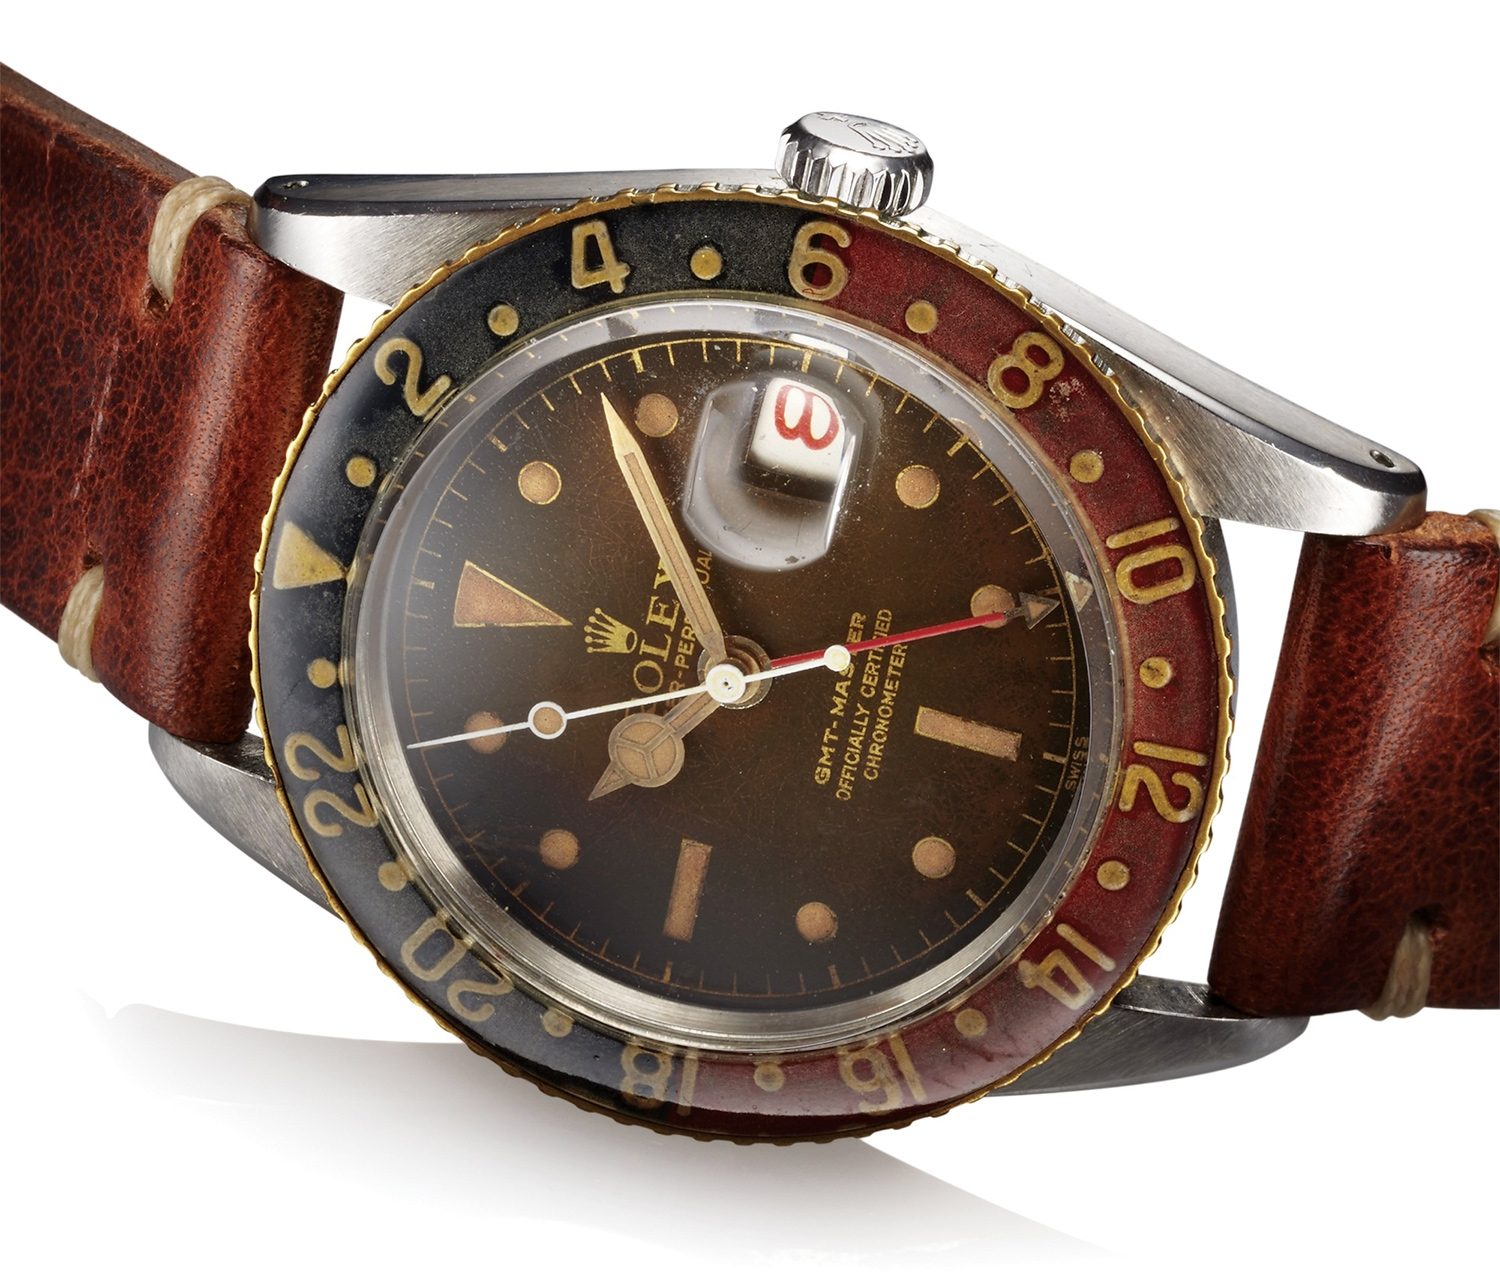 This Antiquorum lot Rolex Ref. 6542 GMT with Gilt Tropical Dial in Steel up for auction in June still retains its original Bakelite bezel and the dial has turned a beautiful brown color. Estimated auction price: $15,000 - $35,000